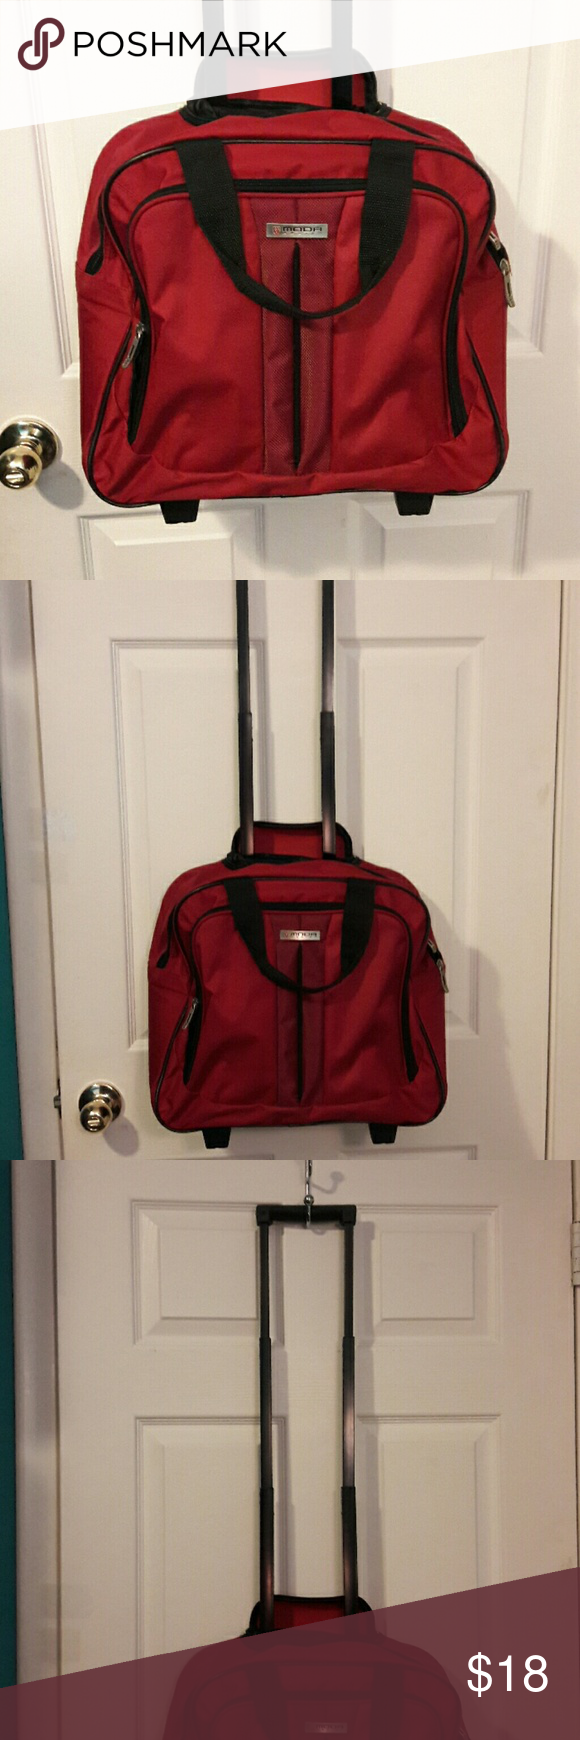 TRAVEL BAG W/WHEELS Like new. Normal wear on wheels. Only used twice in a flight as my carry on. Great shape. Lots of room. 1 outer pocket of good size. Room to fit your laptop, just check measurements.  16W 14L 6.5W. Handle extension is 25 in, which hides when not in use. Moda International Bags Travel Bags